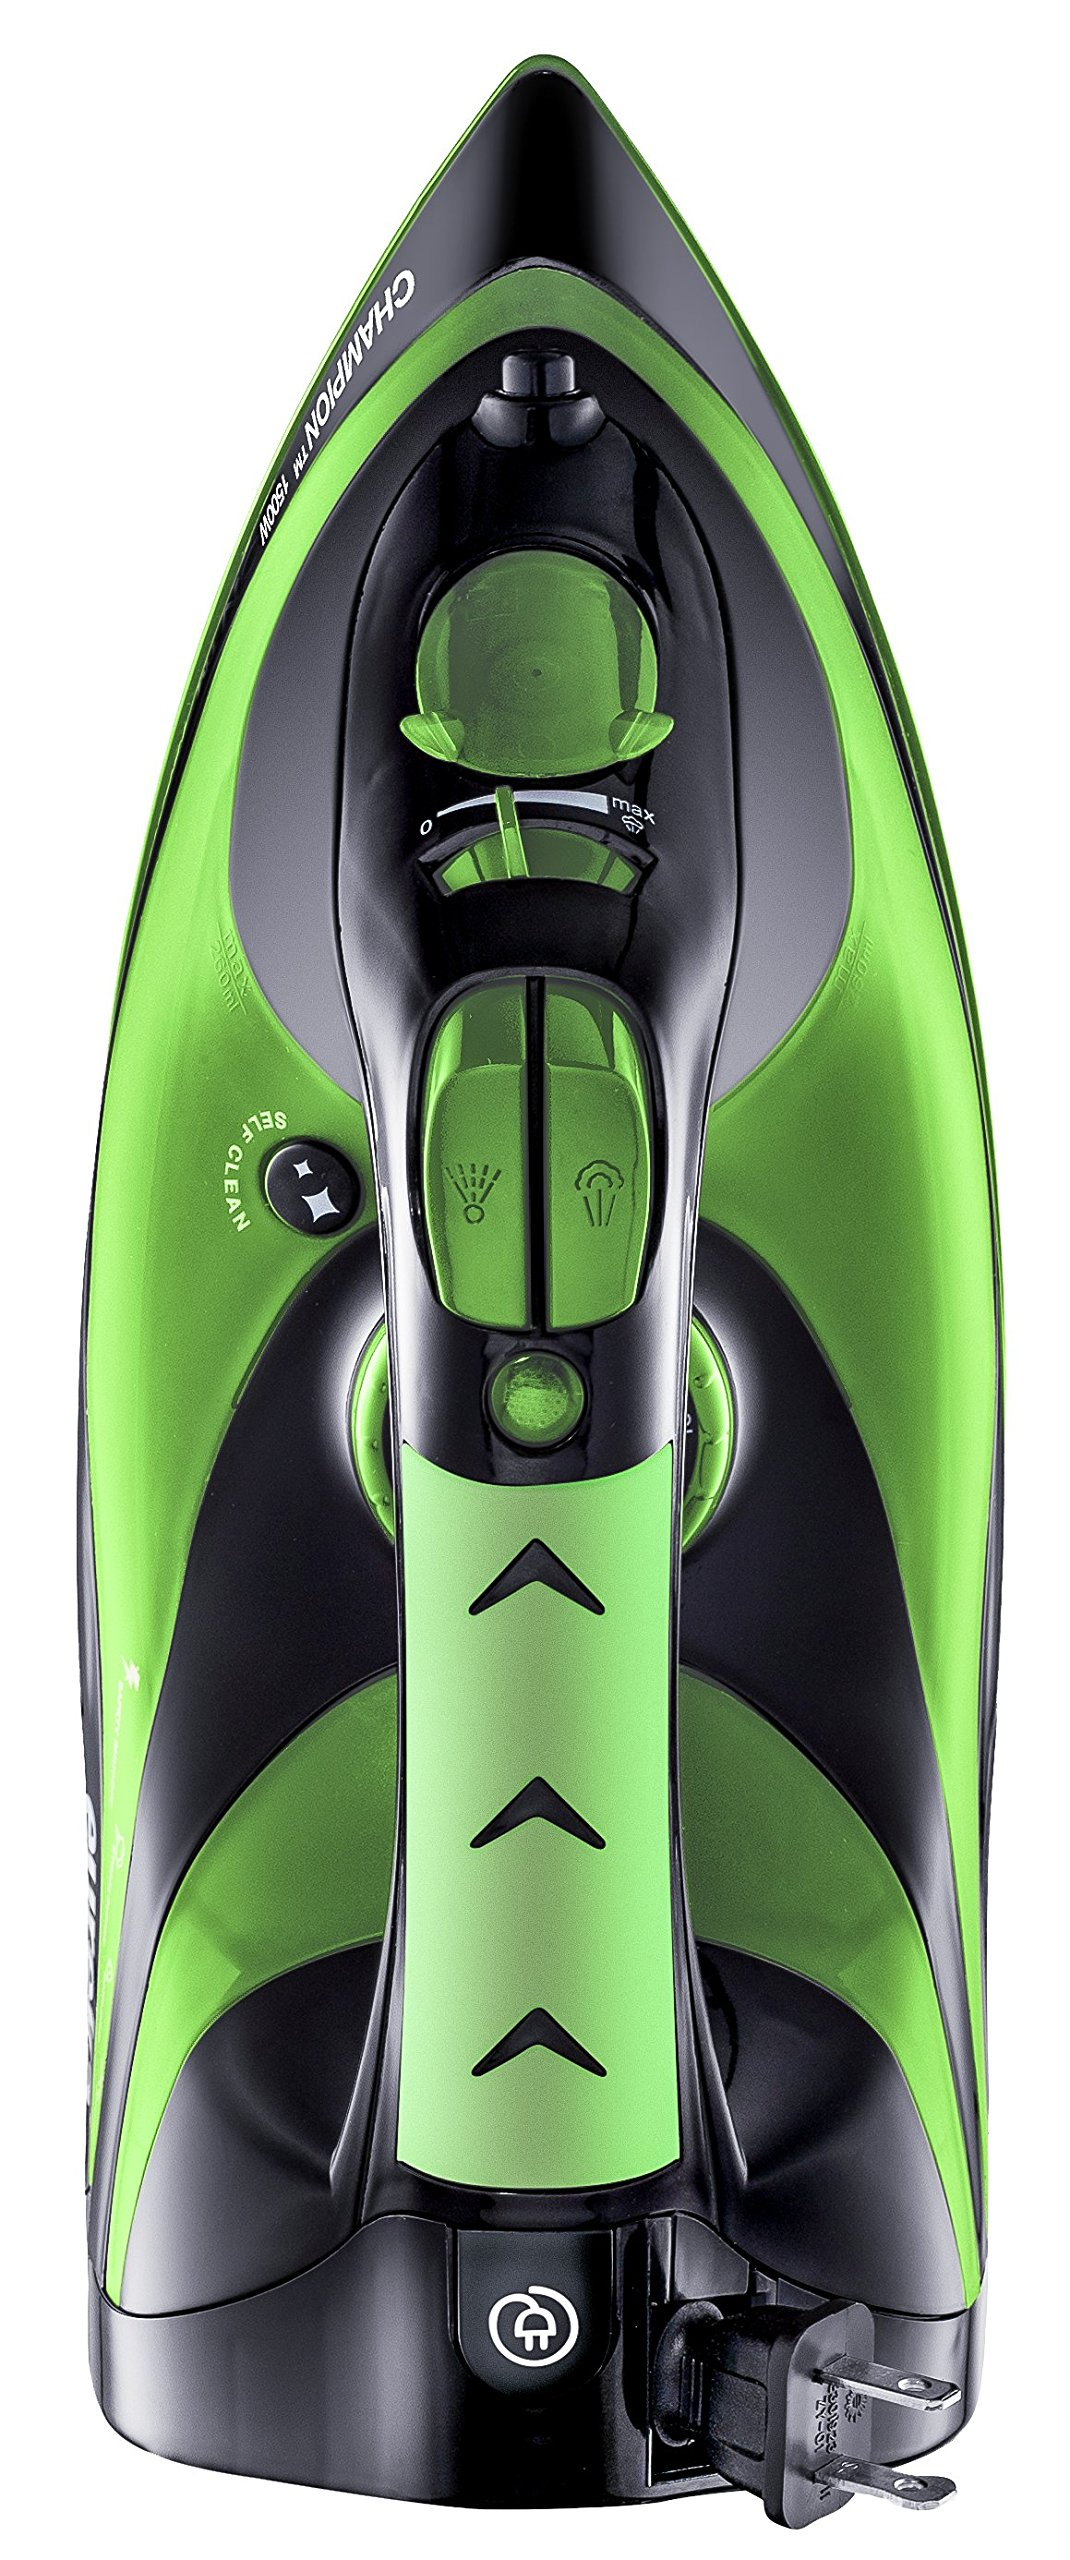 Eureka Champion Super-Hot Green 1500 Watt Iron Powerful Steam Surge Technology with 8ft Retractable Cord-Pouch Included